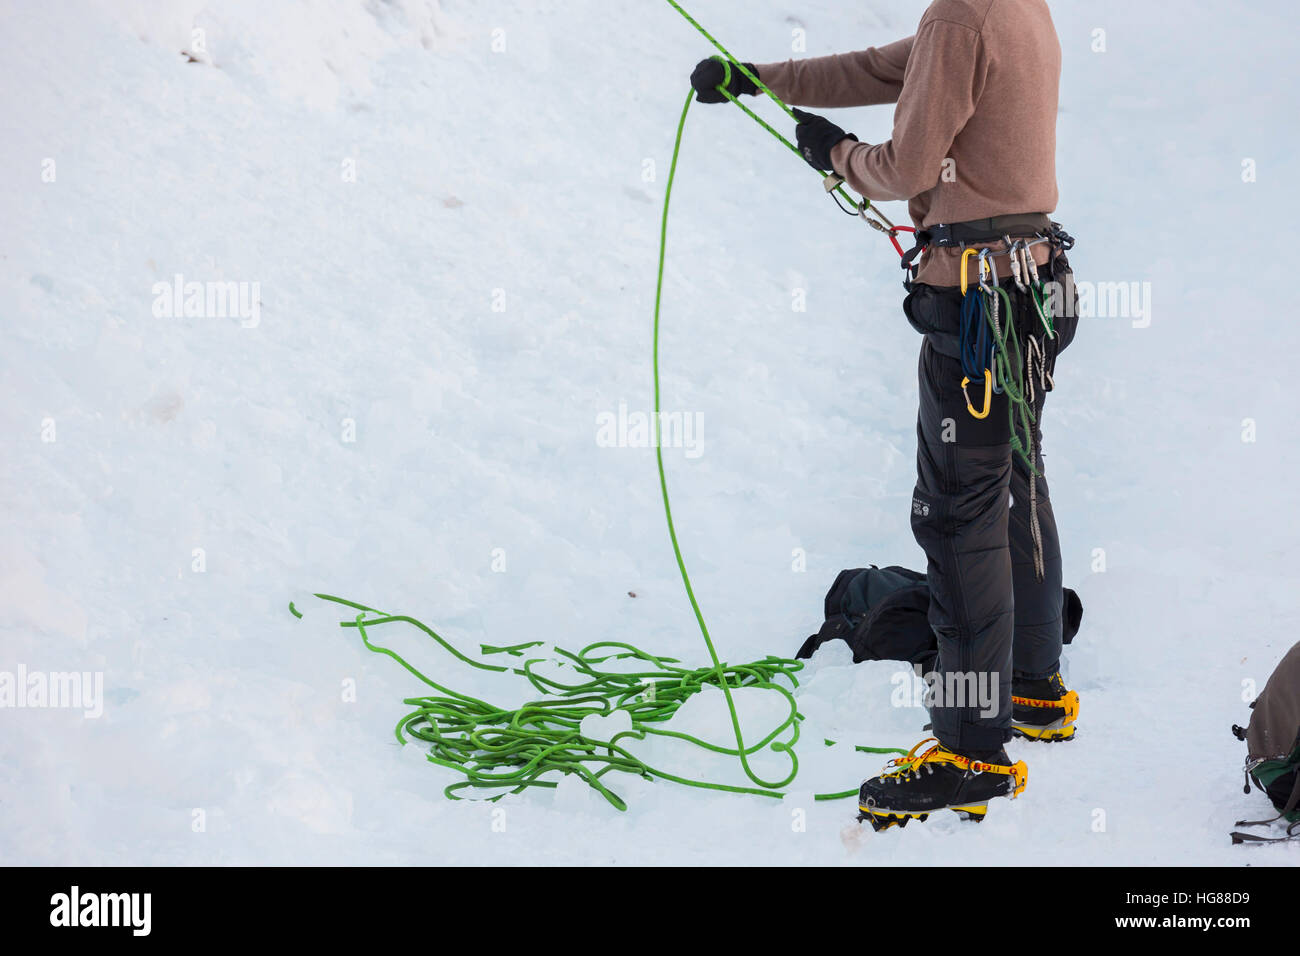 Ouray, Colorado - A climber belays his partner while ice climbing in Ouray Ice Park. - Stock Image